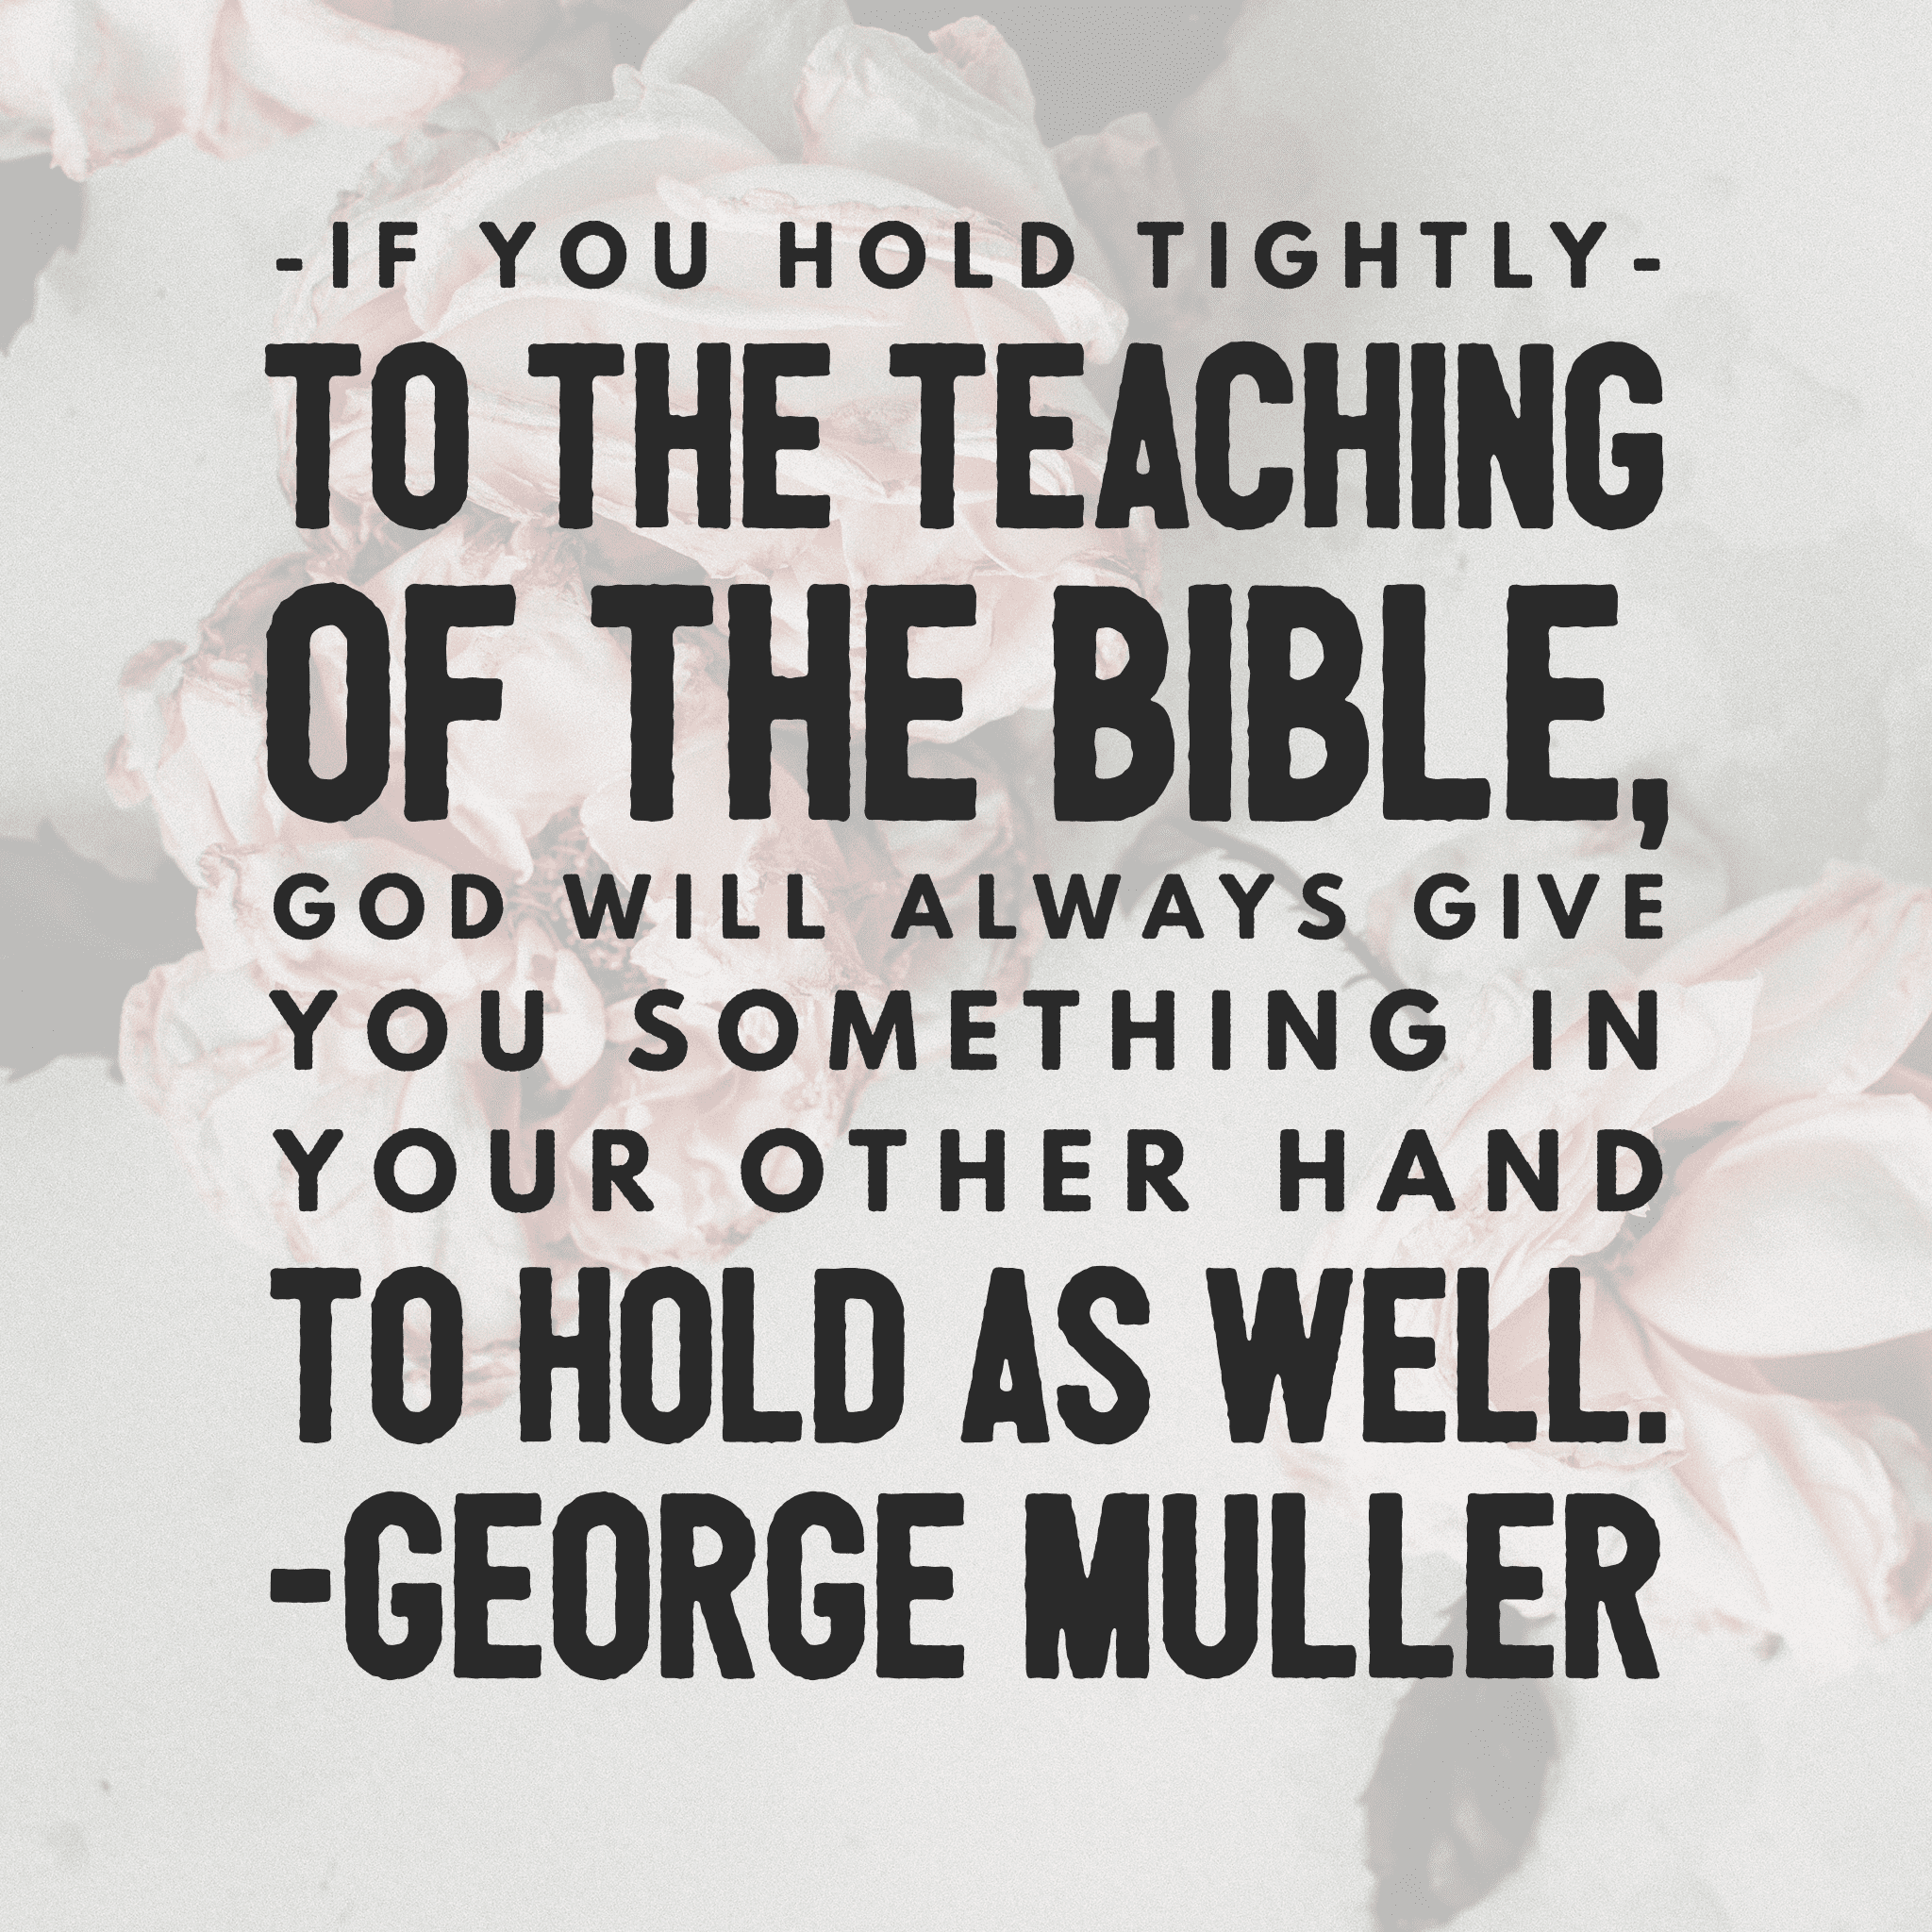 George Muller quote